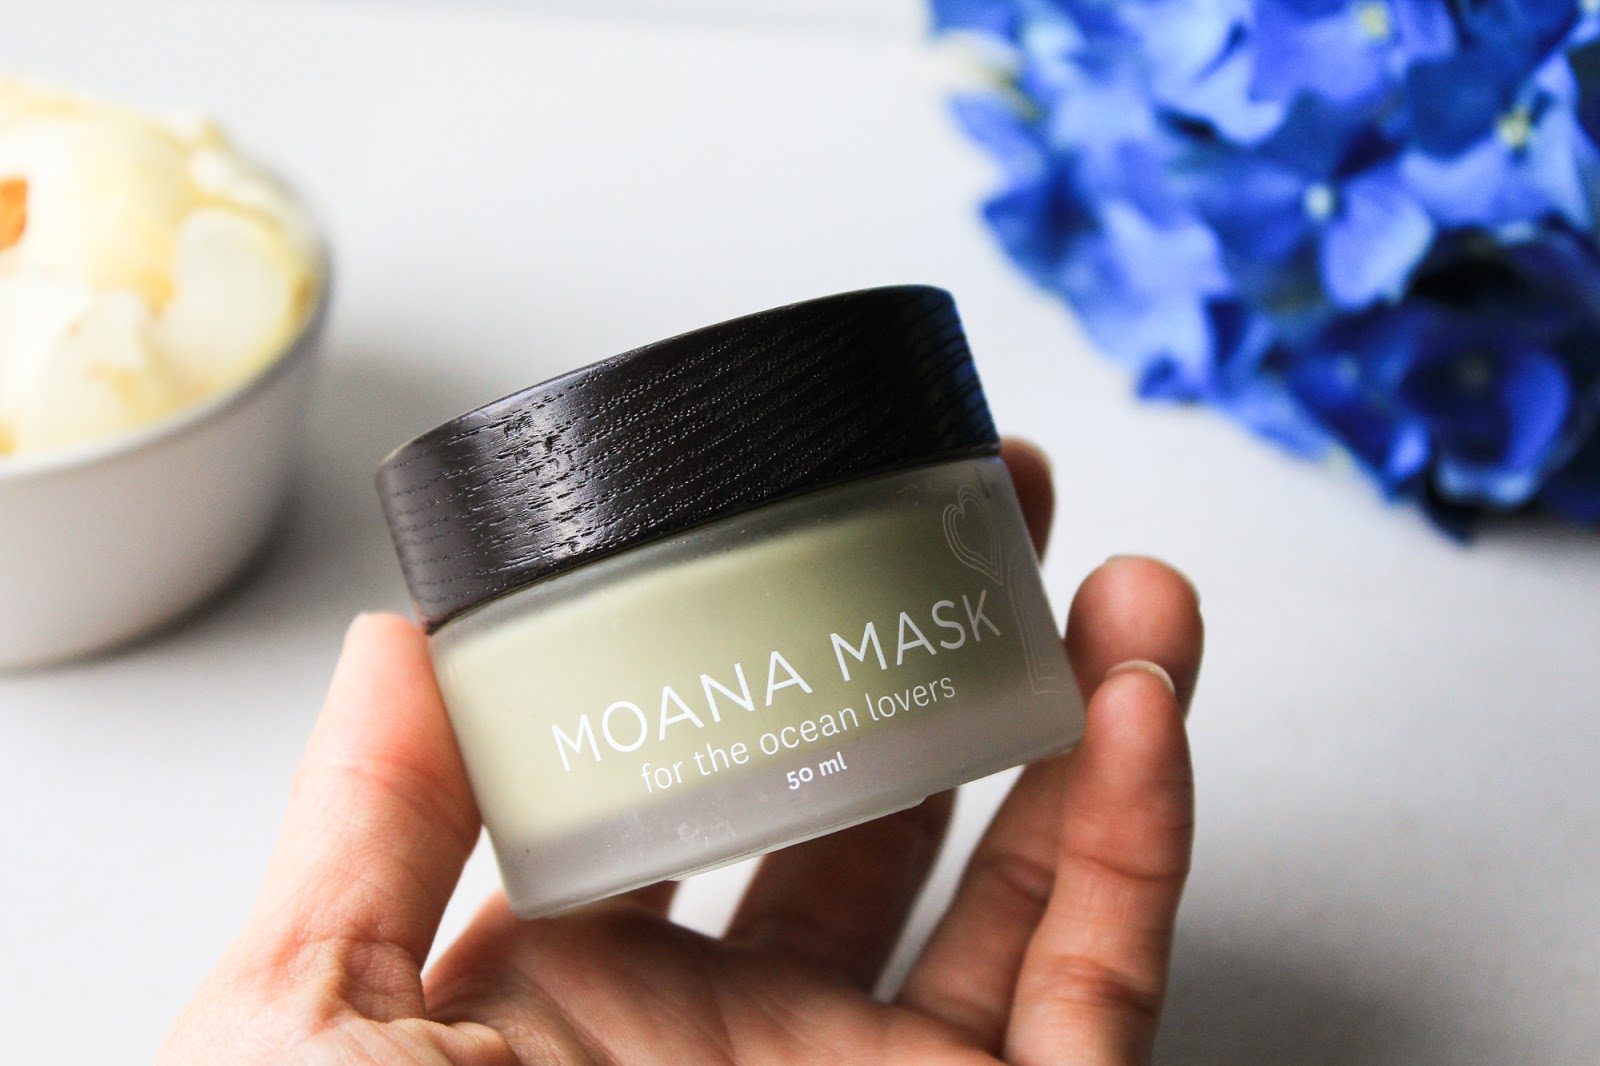 Honua Skincare Moana Mask - For the Ocean Lovers. June 2018 Beauty Discovery by Beauty Heroes. Gel like texture.